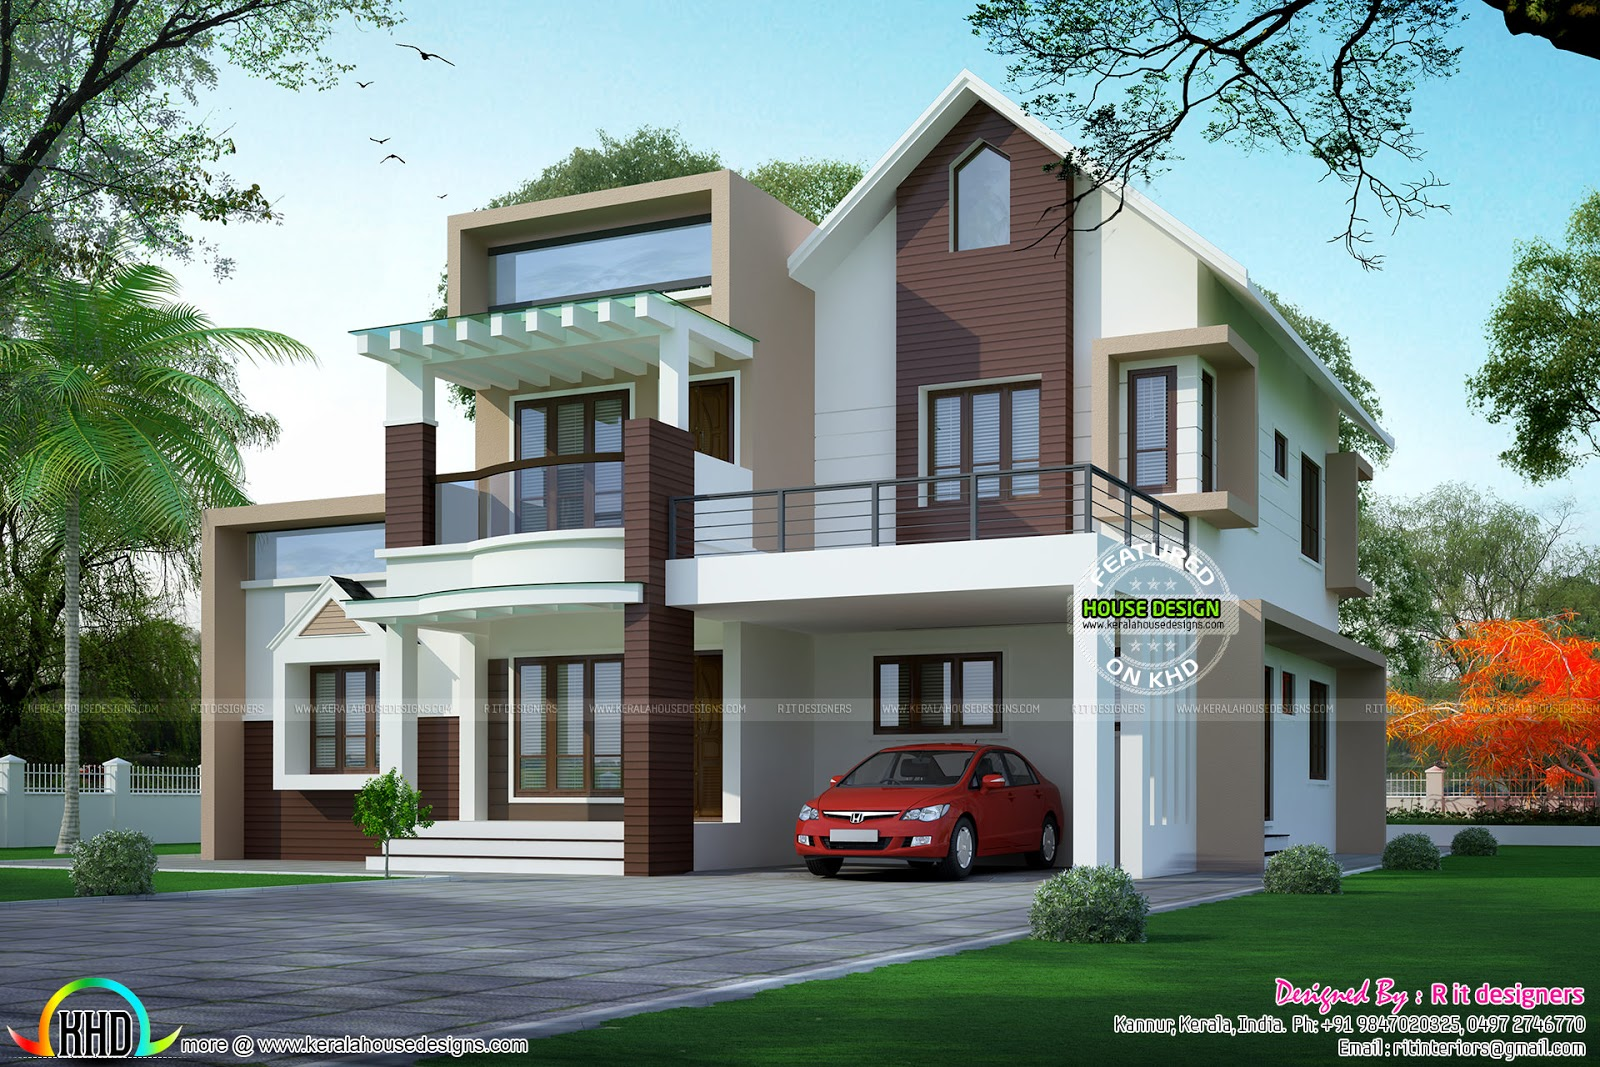 310 sq yd contemporary house mix sloping roof kerala for Kerala contemporary home designs